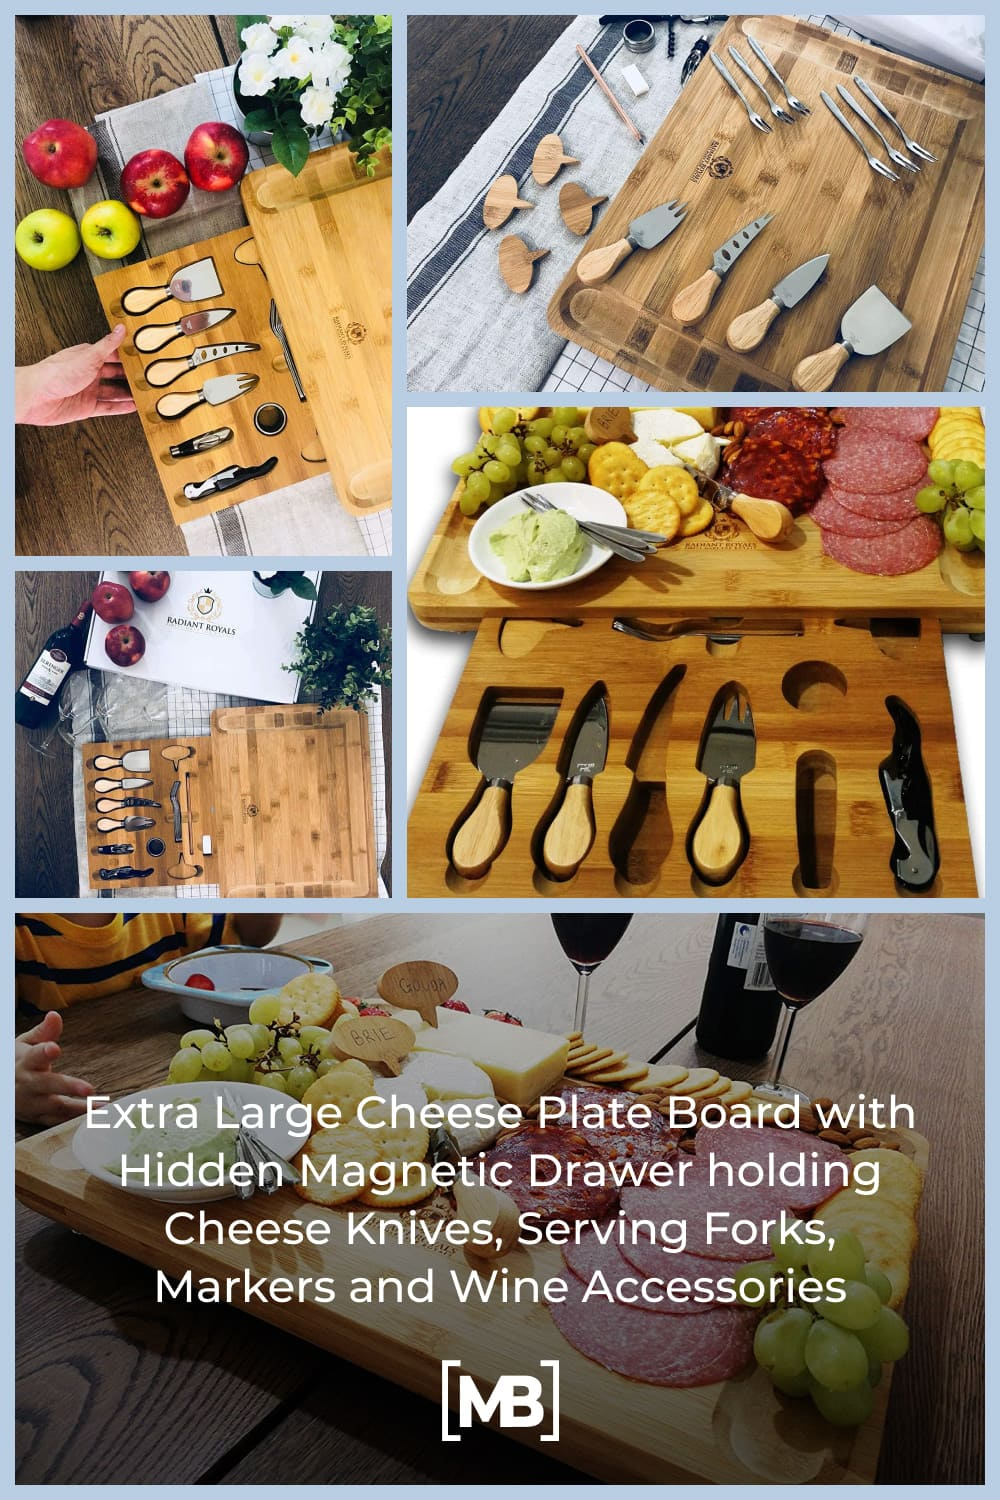 Radiant Royals always put your wishlist as top priority and as such, we are able to design and craft a cheese board set that exceeds current standards that go beyond expectations for your party and presentation needs.